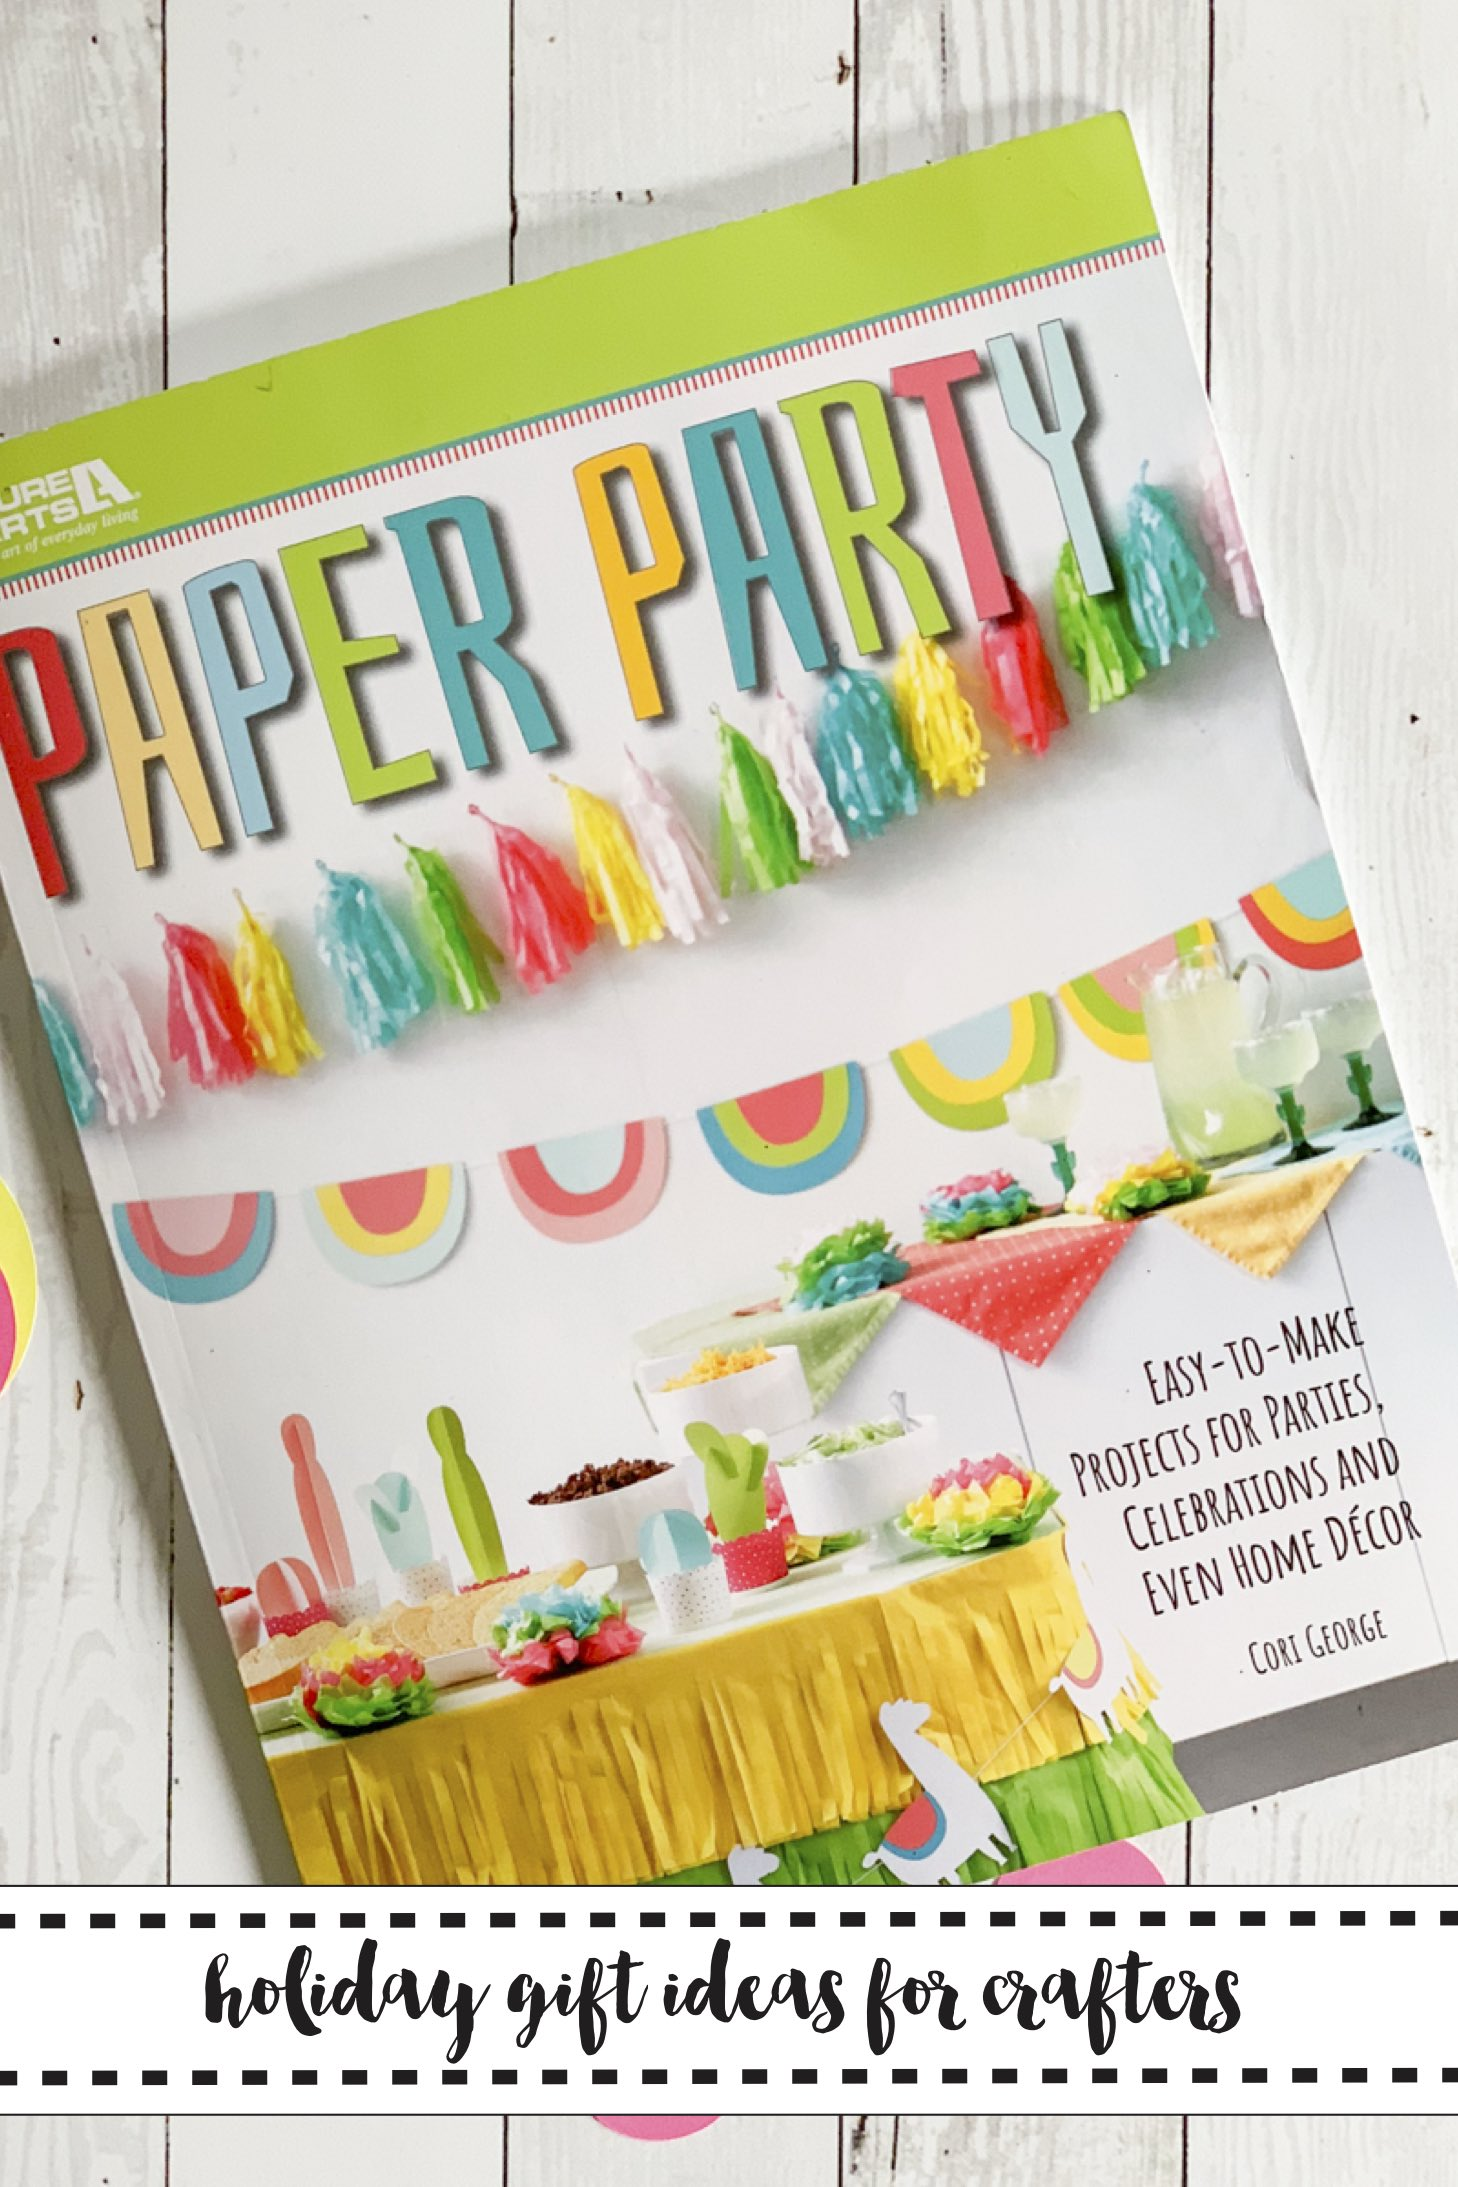 Paper Party Book